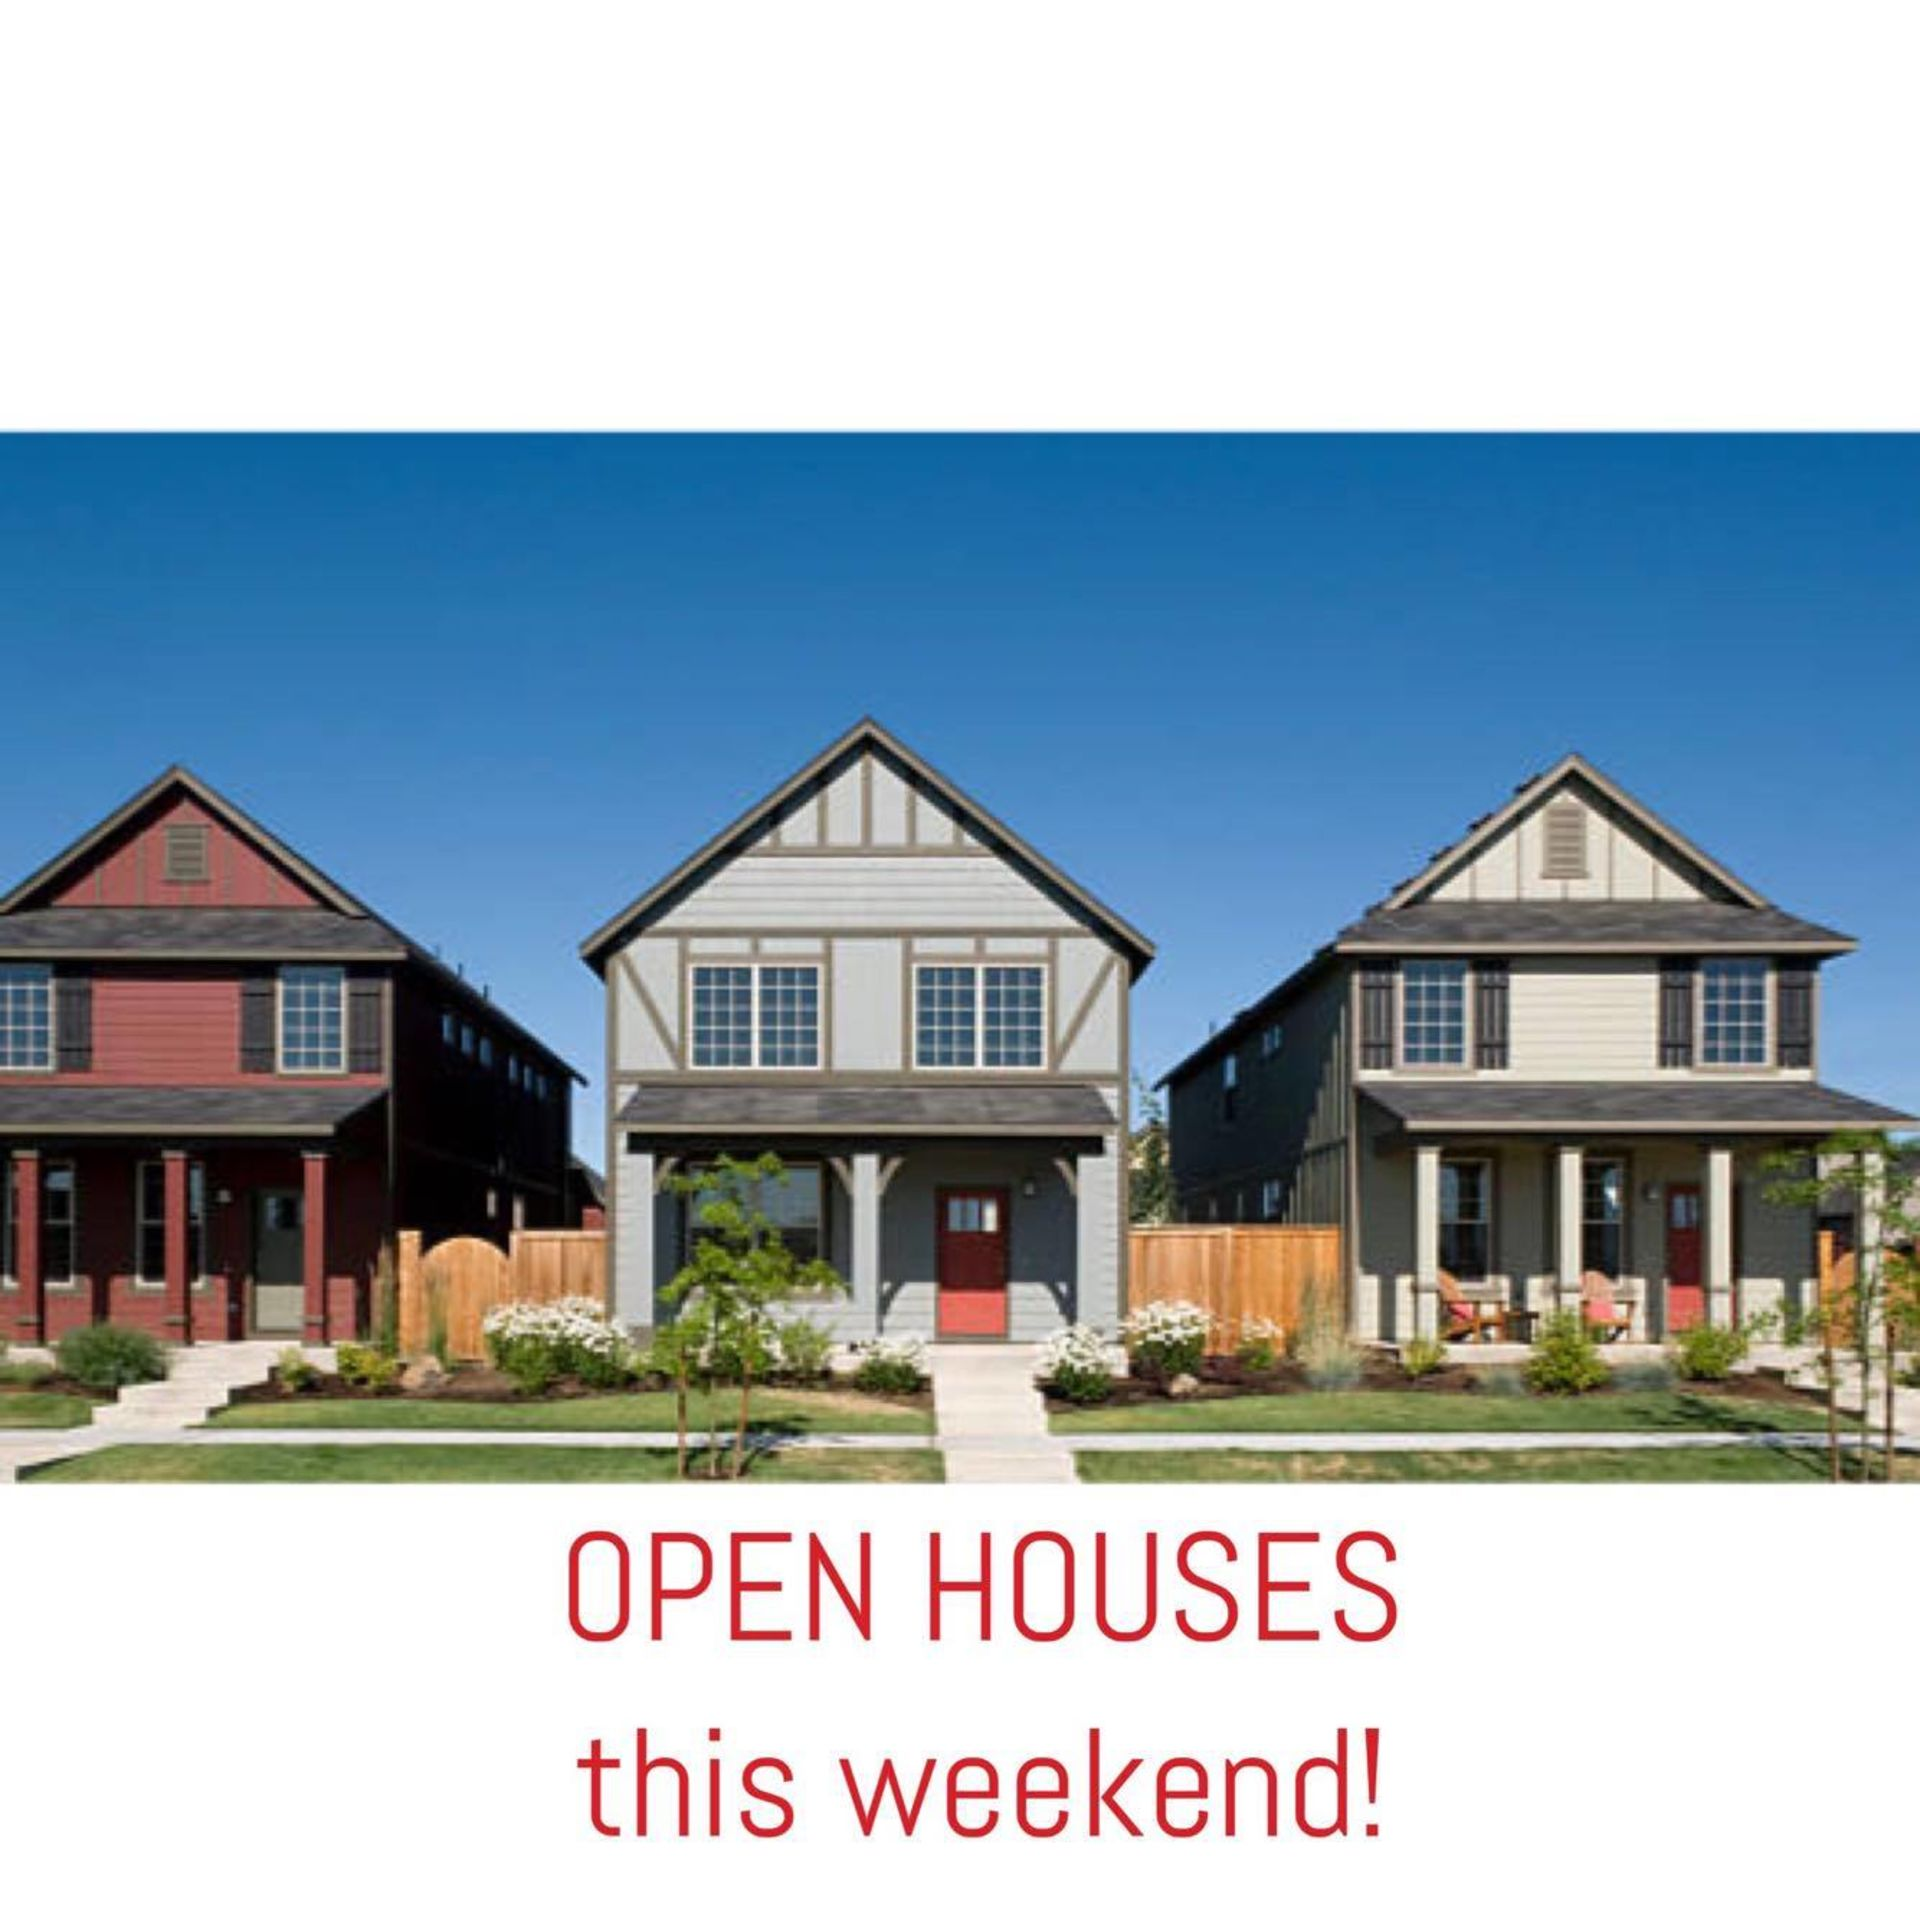 Open Houses this weekend DEC 16th & 17th in Western New York